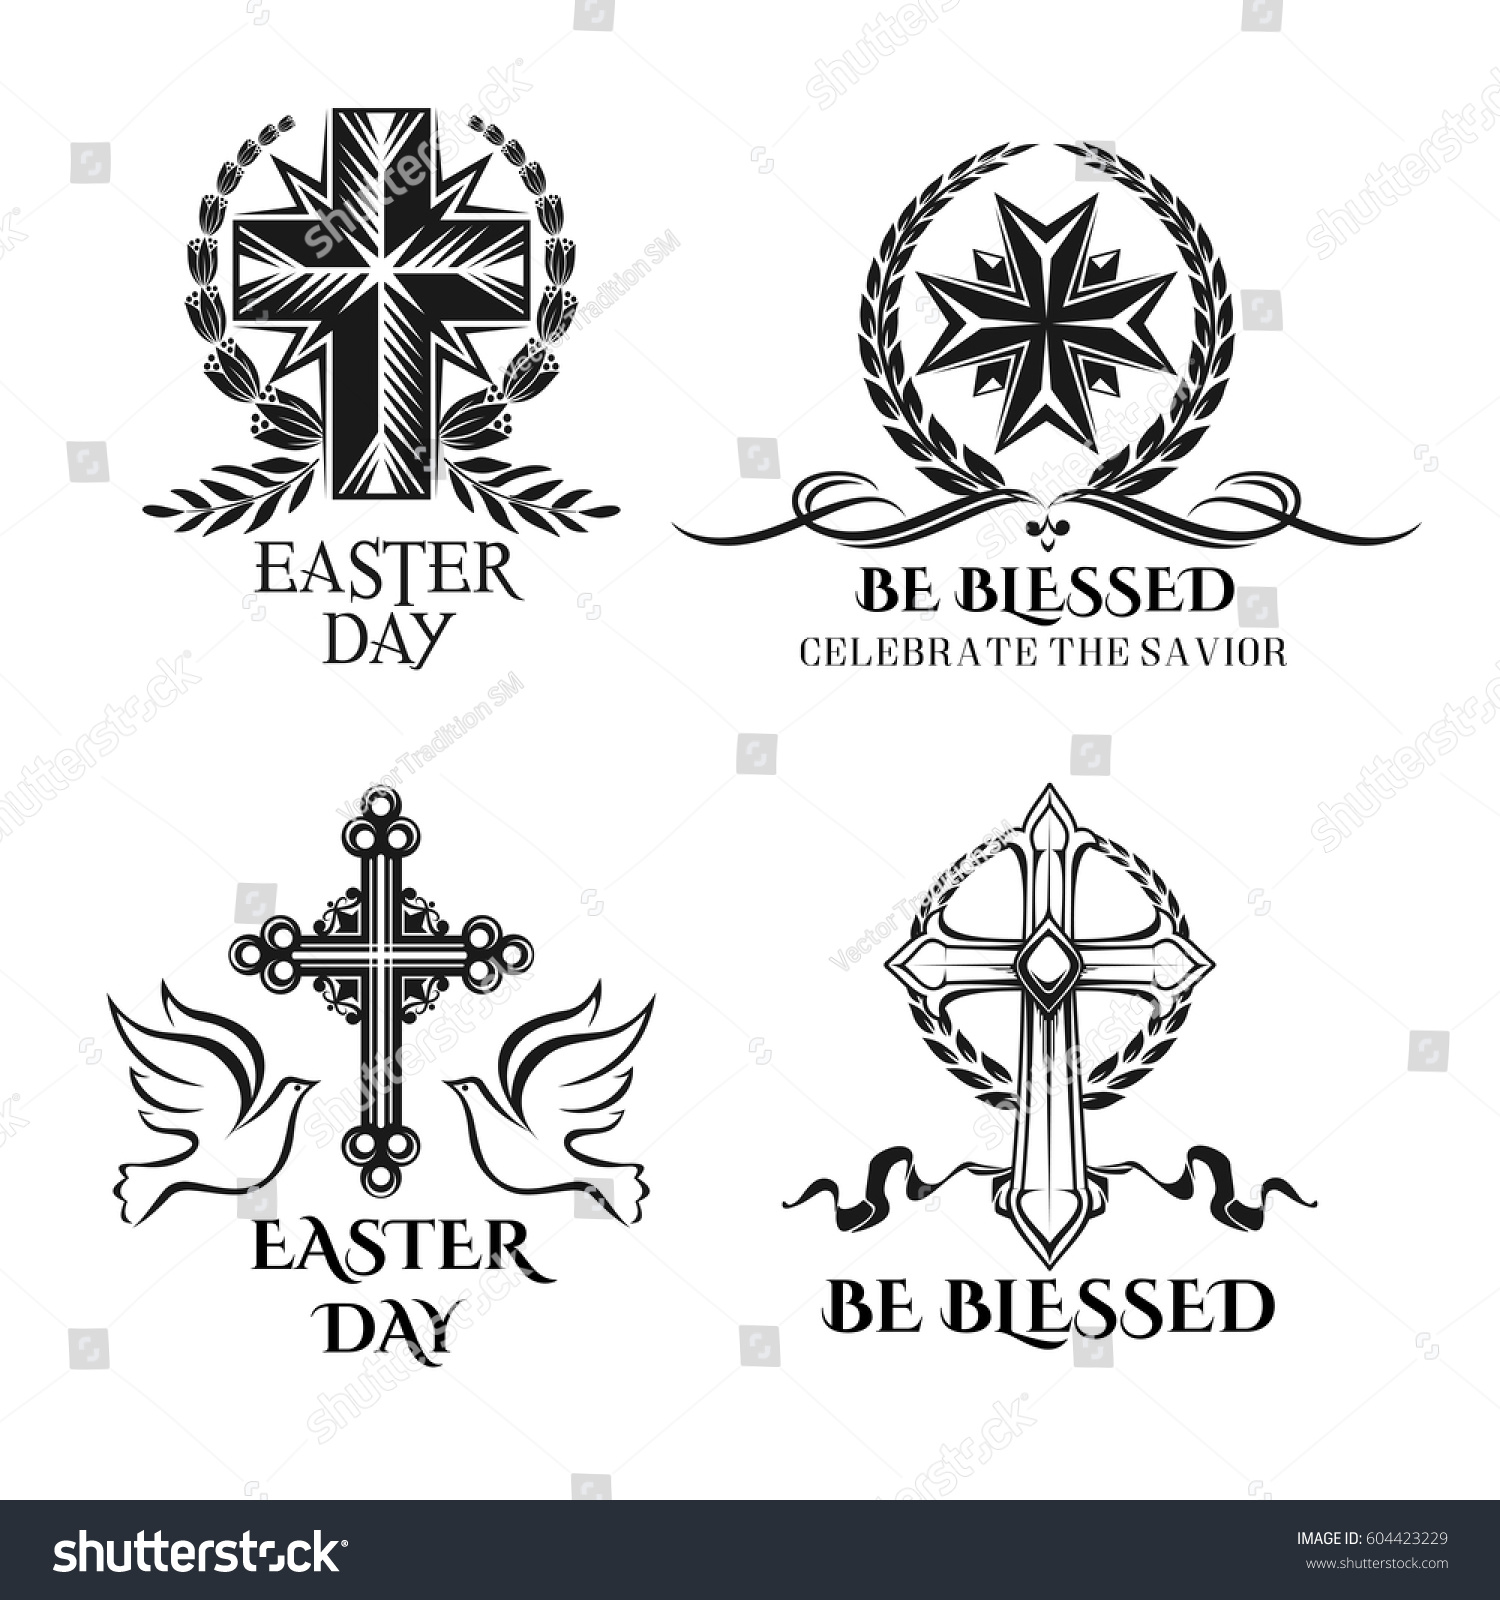 Easter icons crucifix cross ornate symbols vectores en stock easter icons and crucifix cross ornate symbols doves and paschal greeting text be blessed biocorpaavc